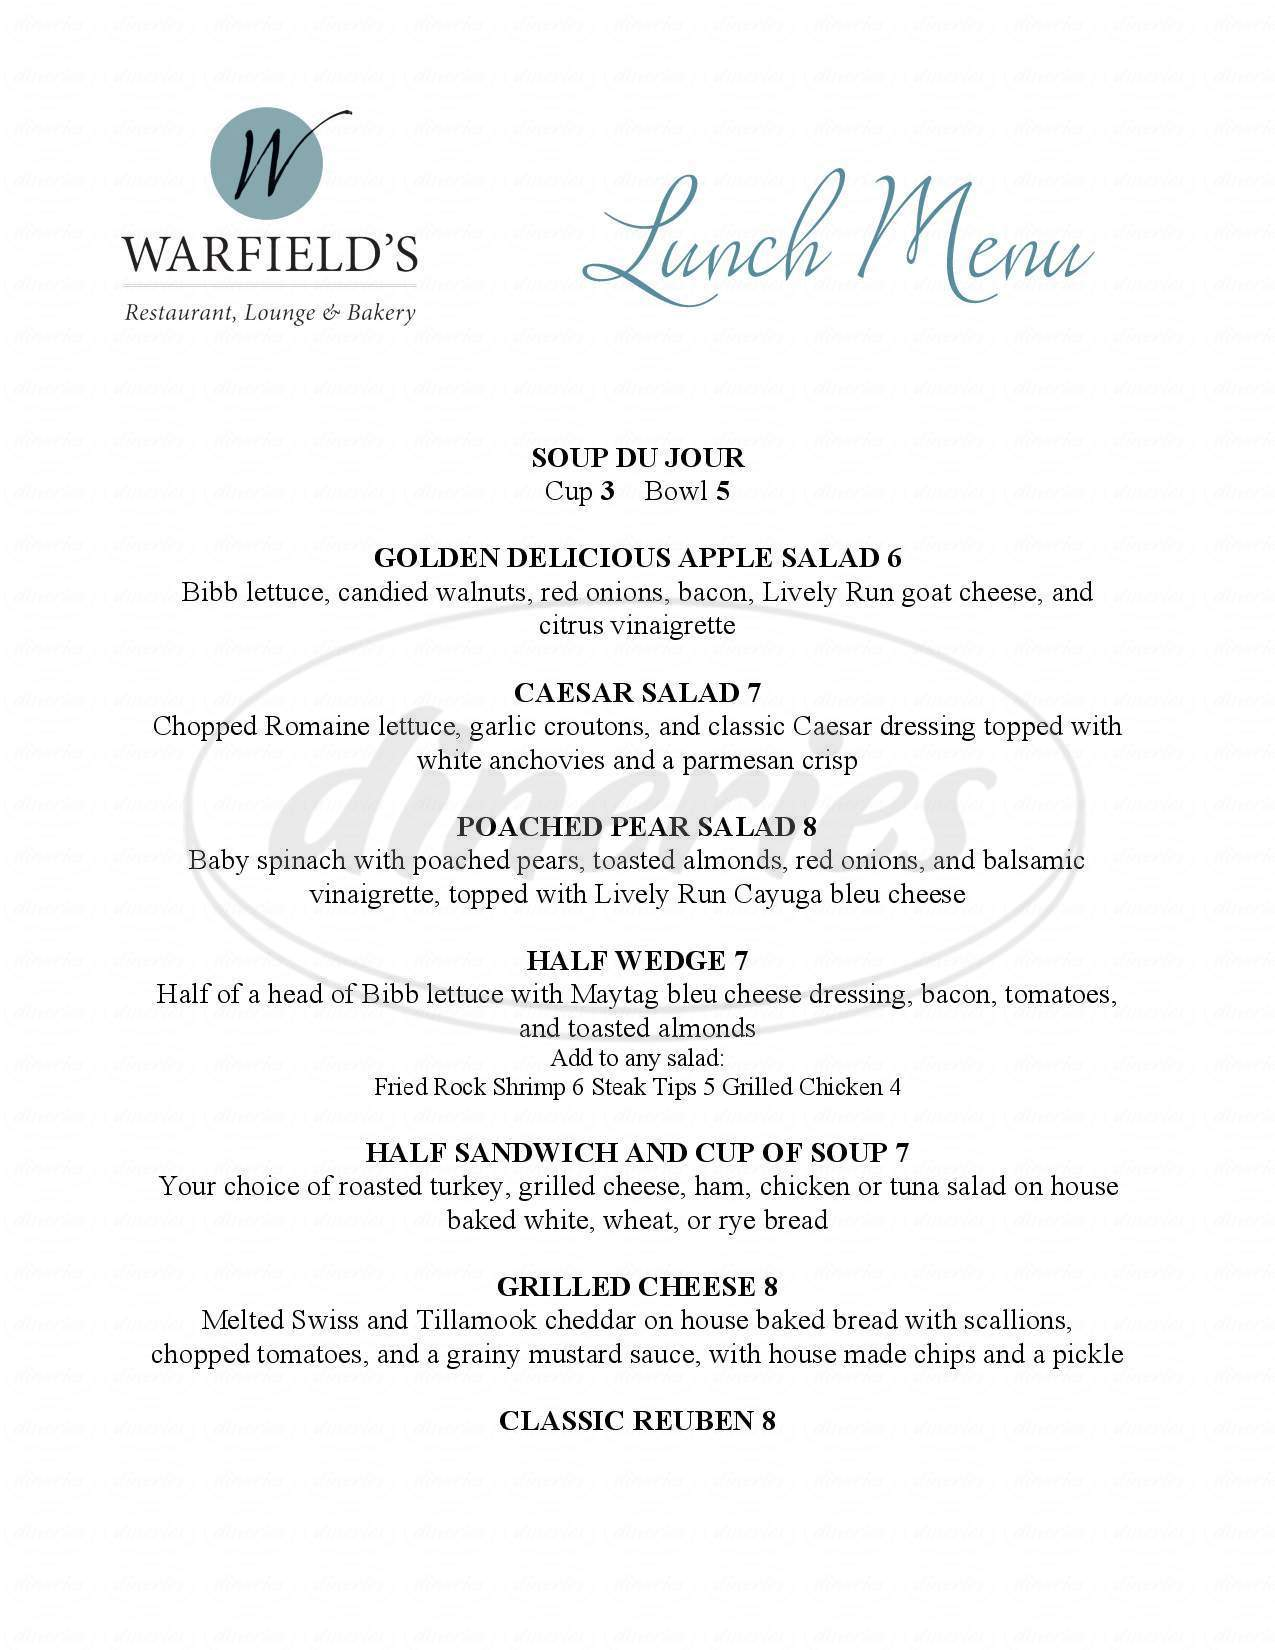 menu for Warfield's Restaurant